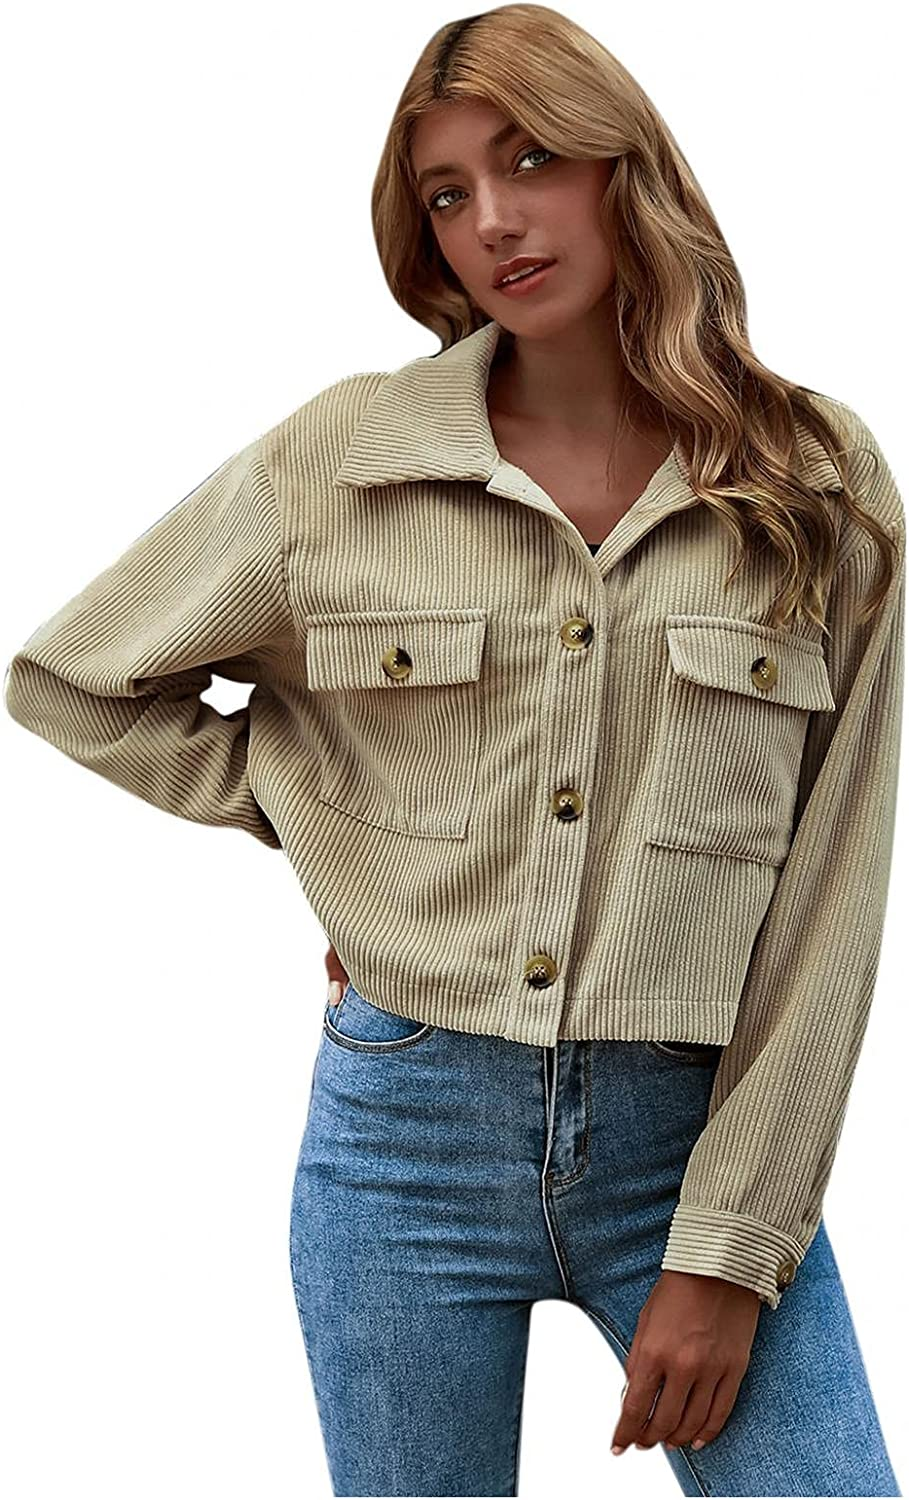 Womens Fashion Vintage Jacket Solid Color Coat Fall Corduroy Outwear Outdoor Casual Blouse Full Button Down Tops